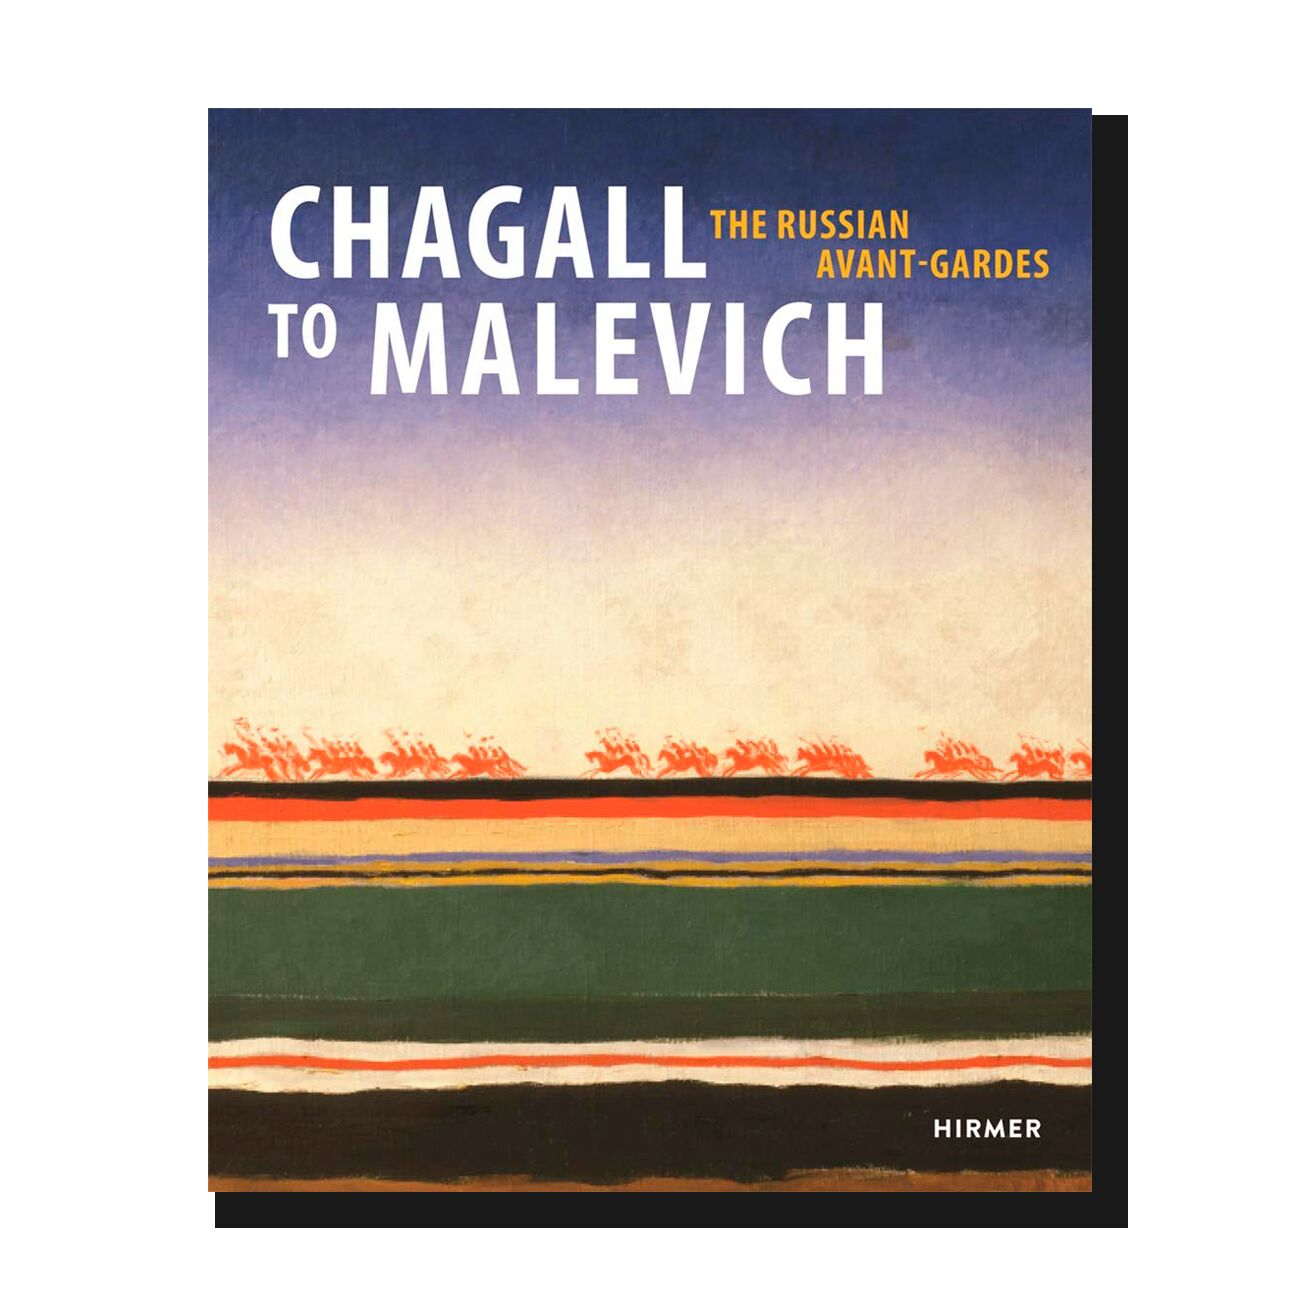 Chagall to Malevich: The Russian Avant-Gardes